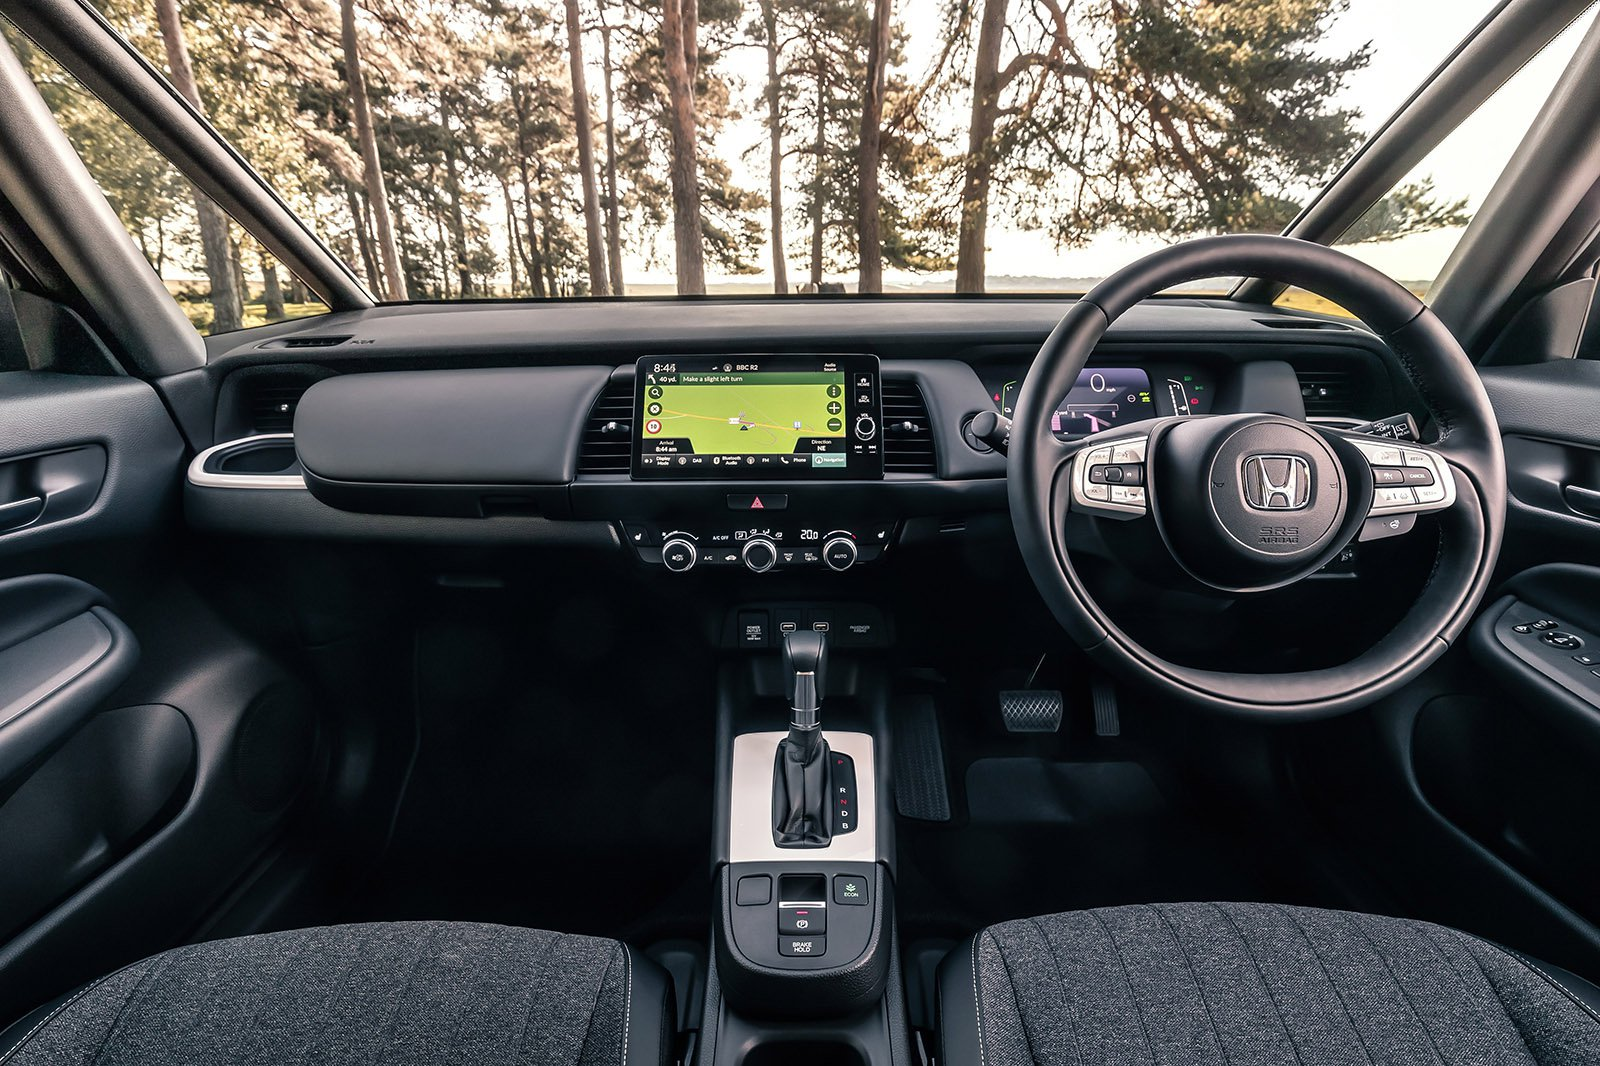 Honda Jazz 2020 RHD dashboard, wide angle